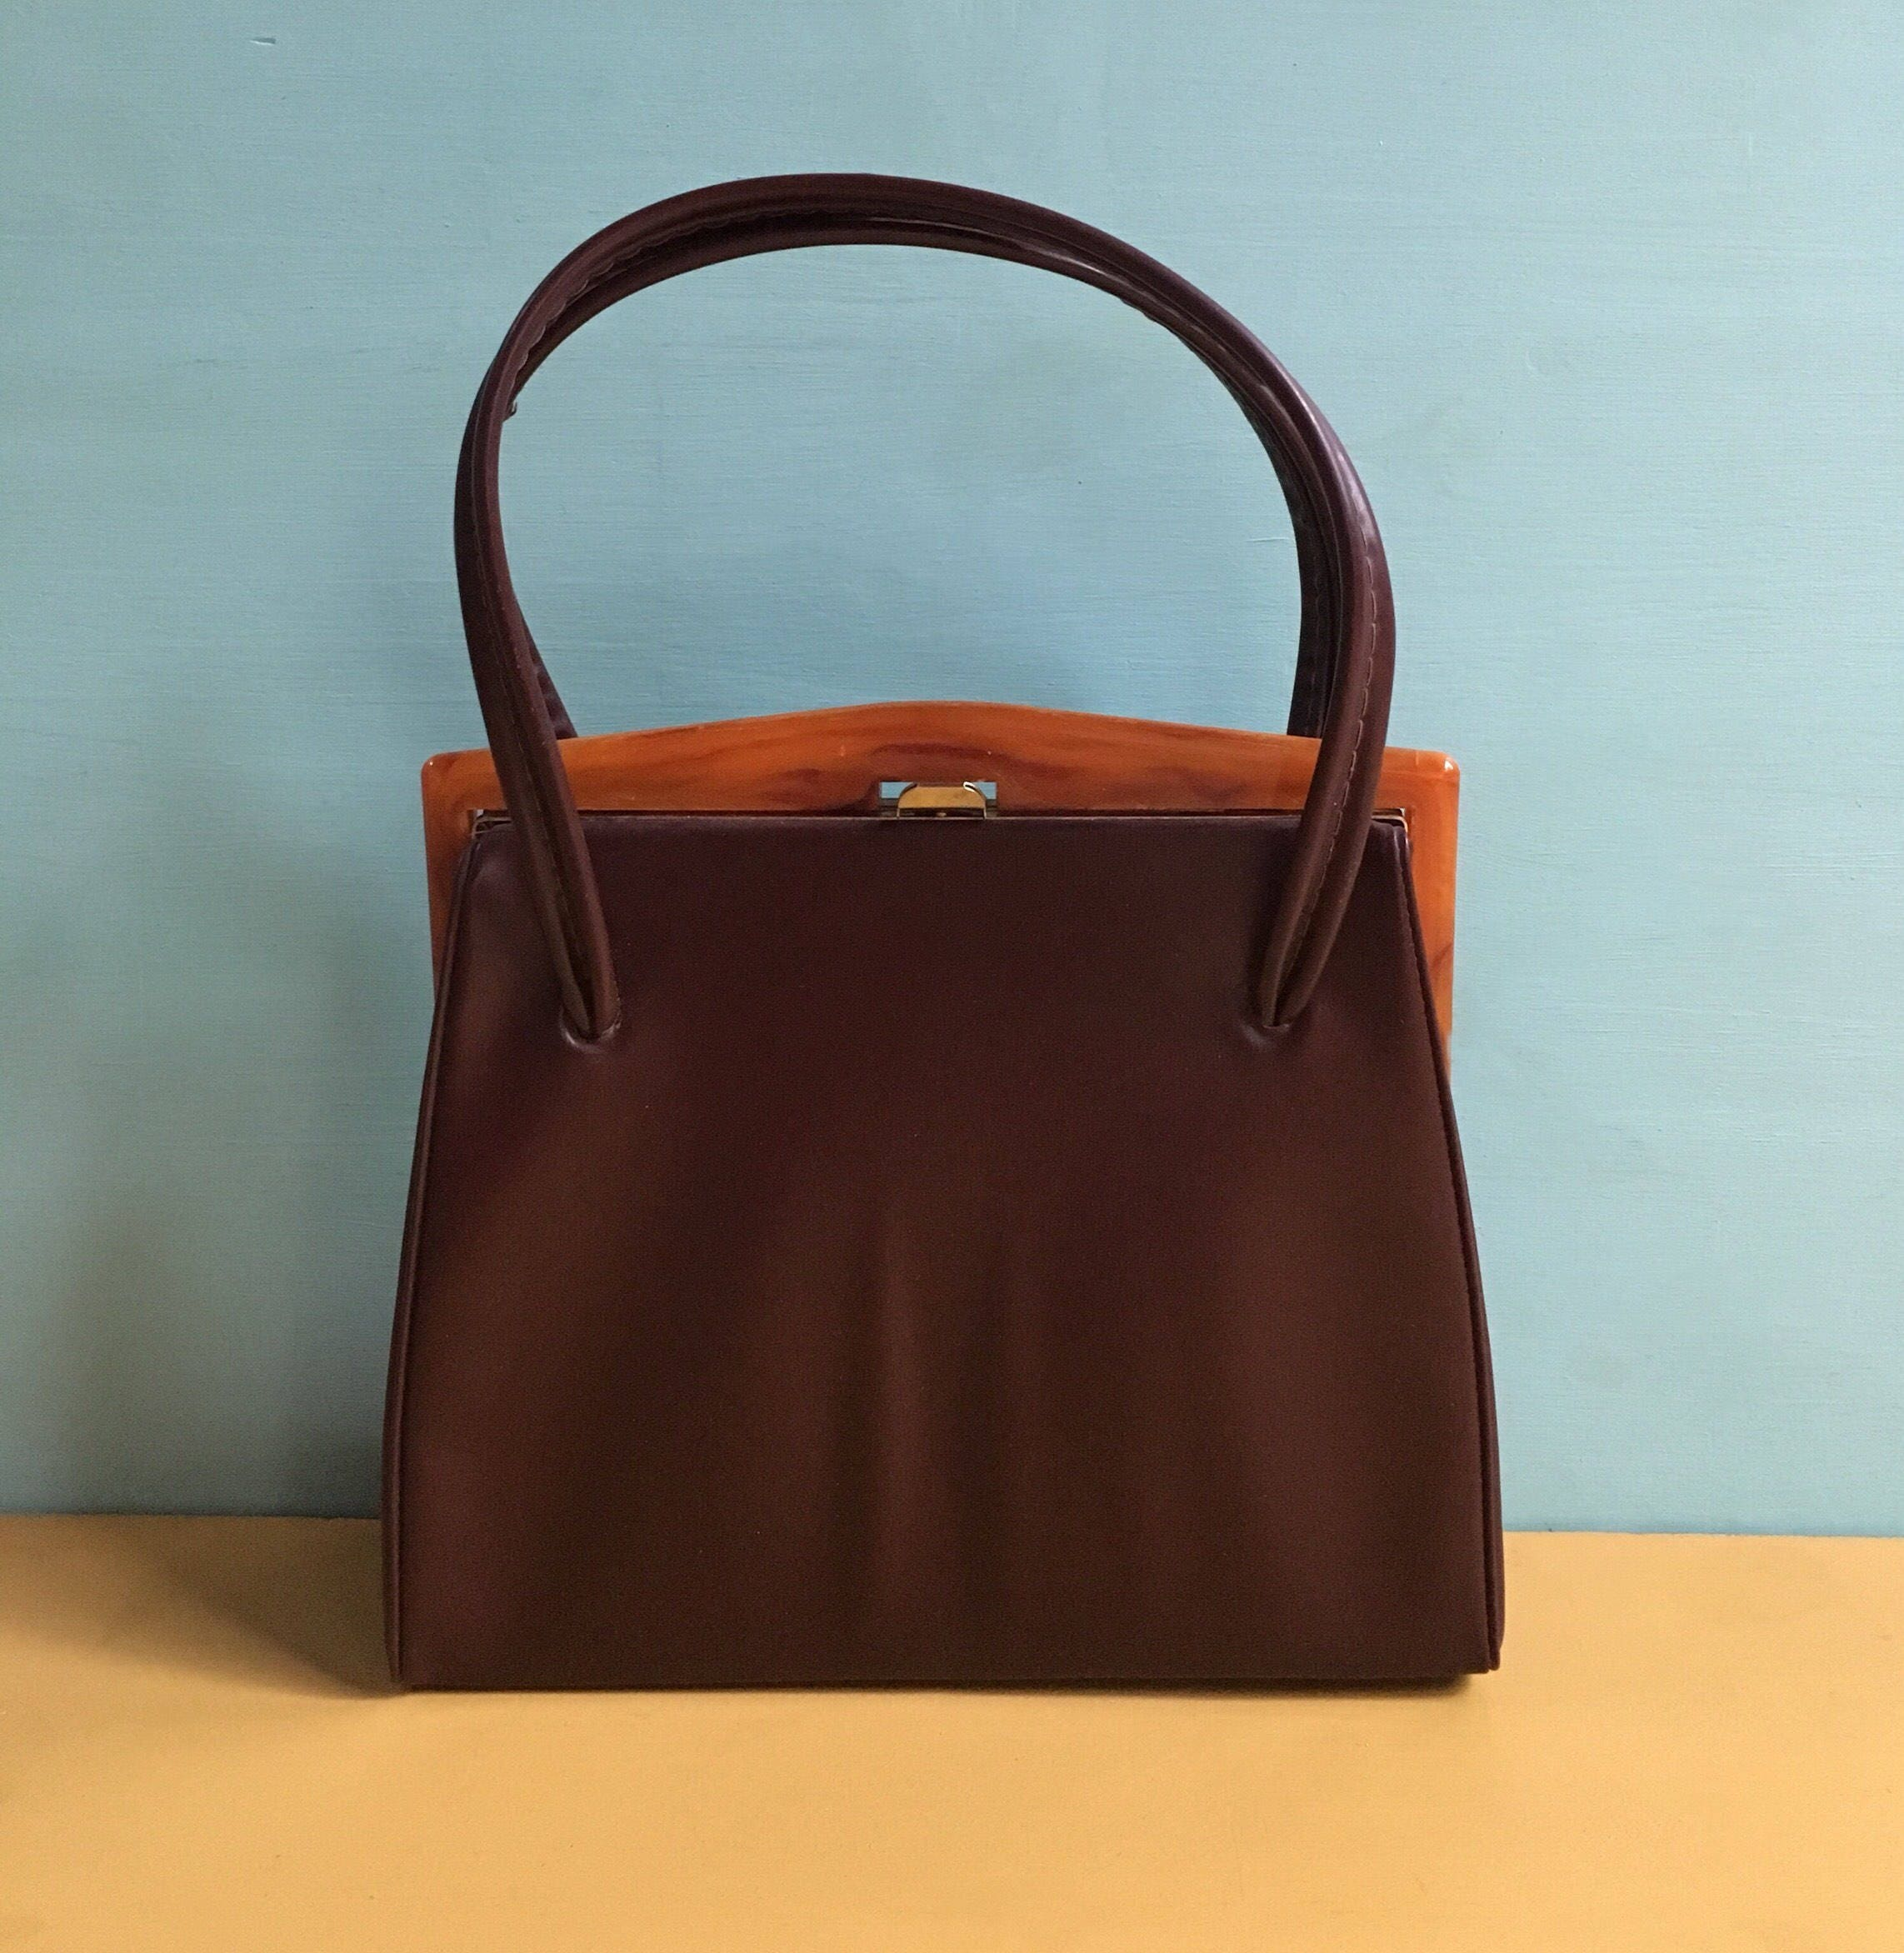 174e8e945db79 Vintage 1950s - brown vinyl structured top handle handbag   purse ...